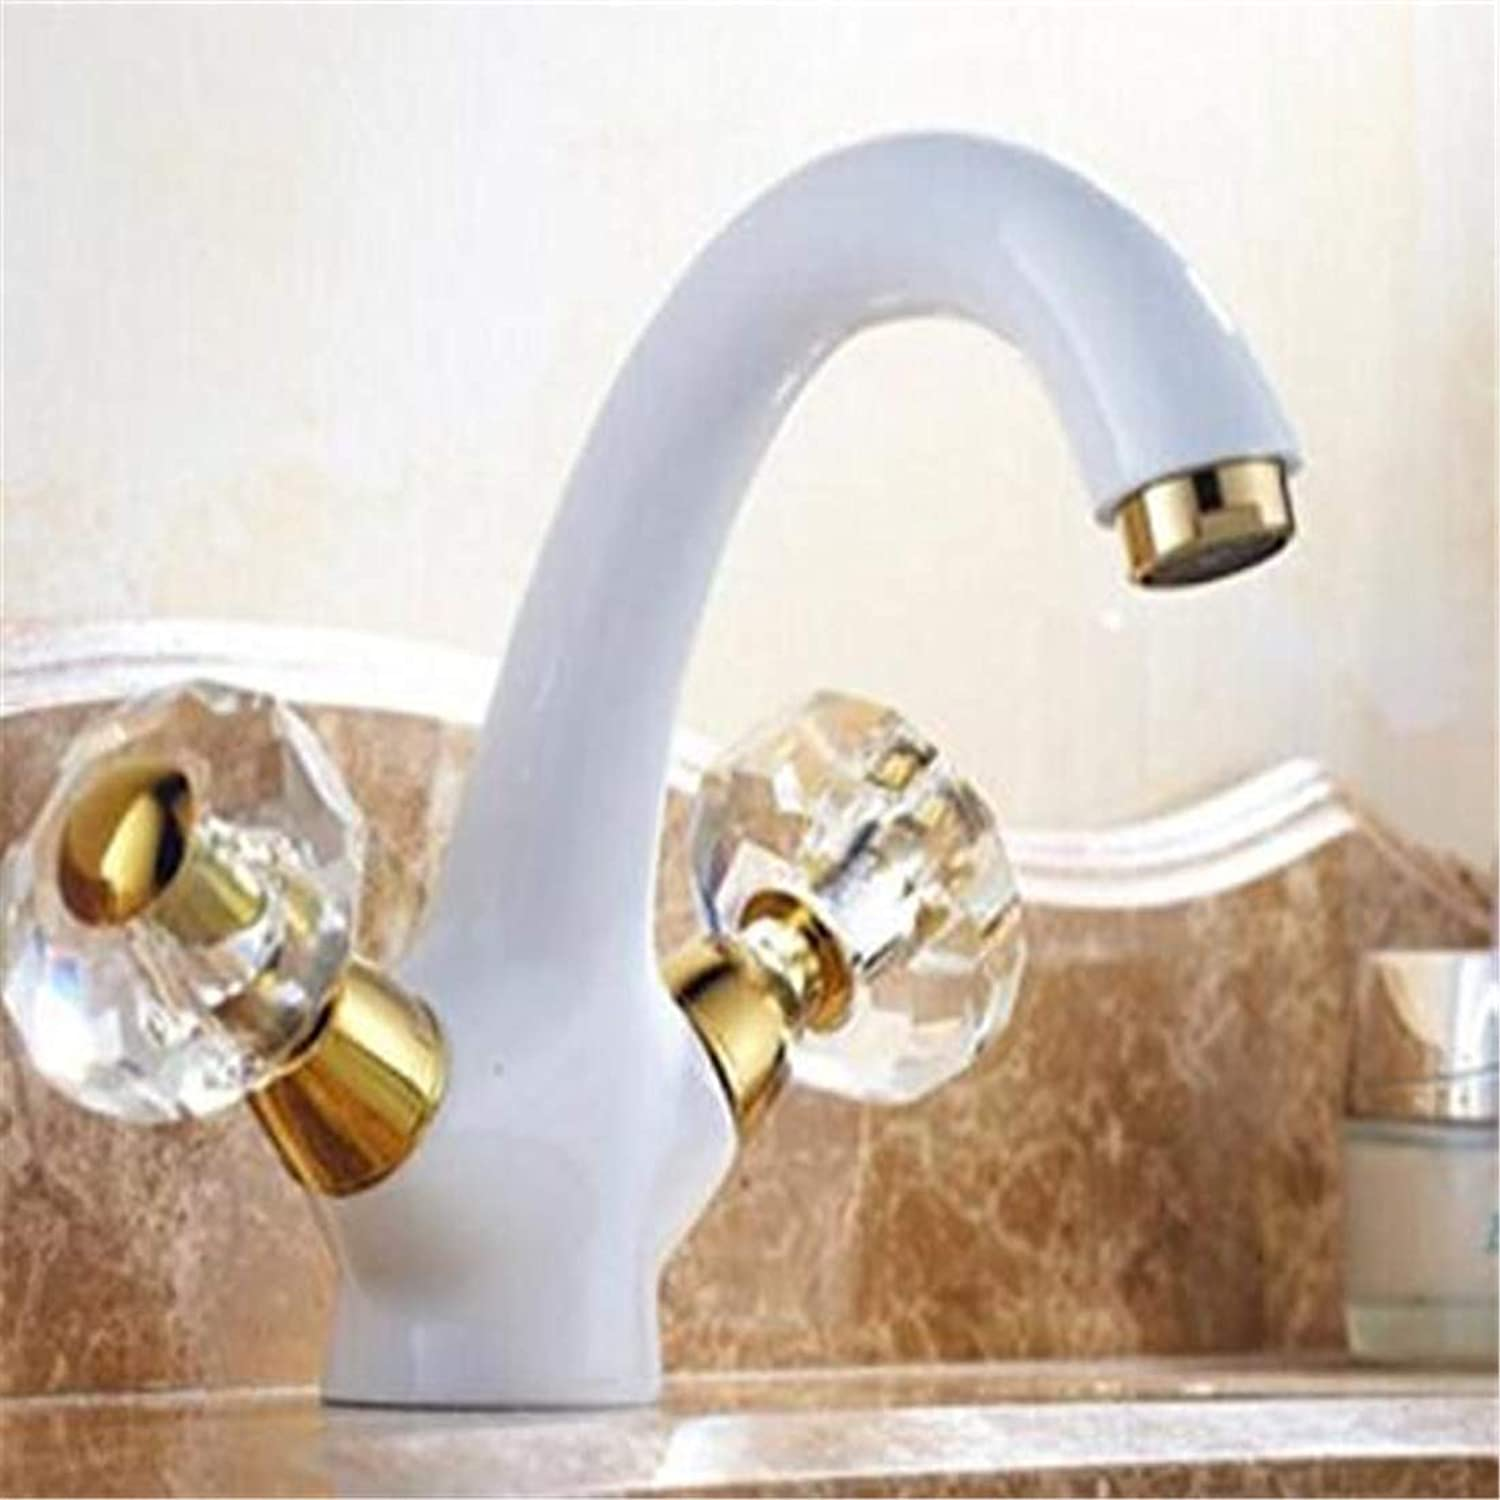 Chrome Kitchen Sink Tap Mounted Hot and Cold White and gold Finished Basin Faucet Sink Mixer Home Decoration